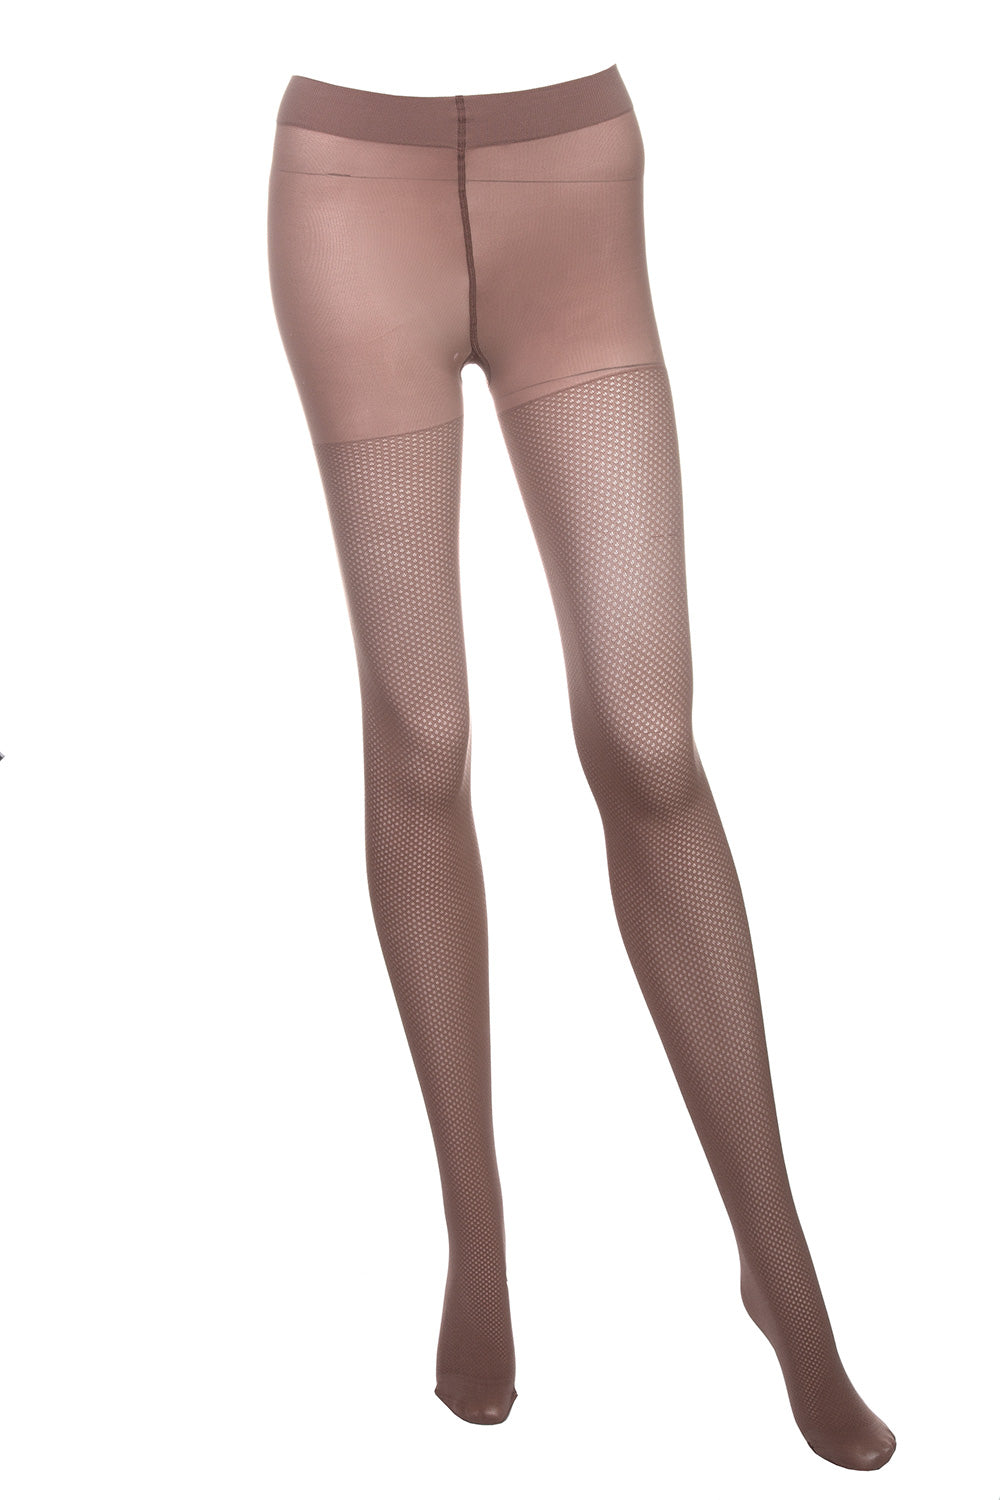 Type 2 Textured Rose Tights